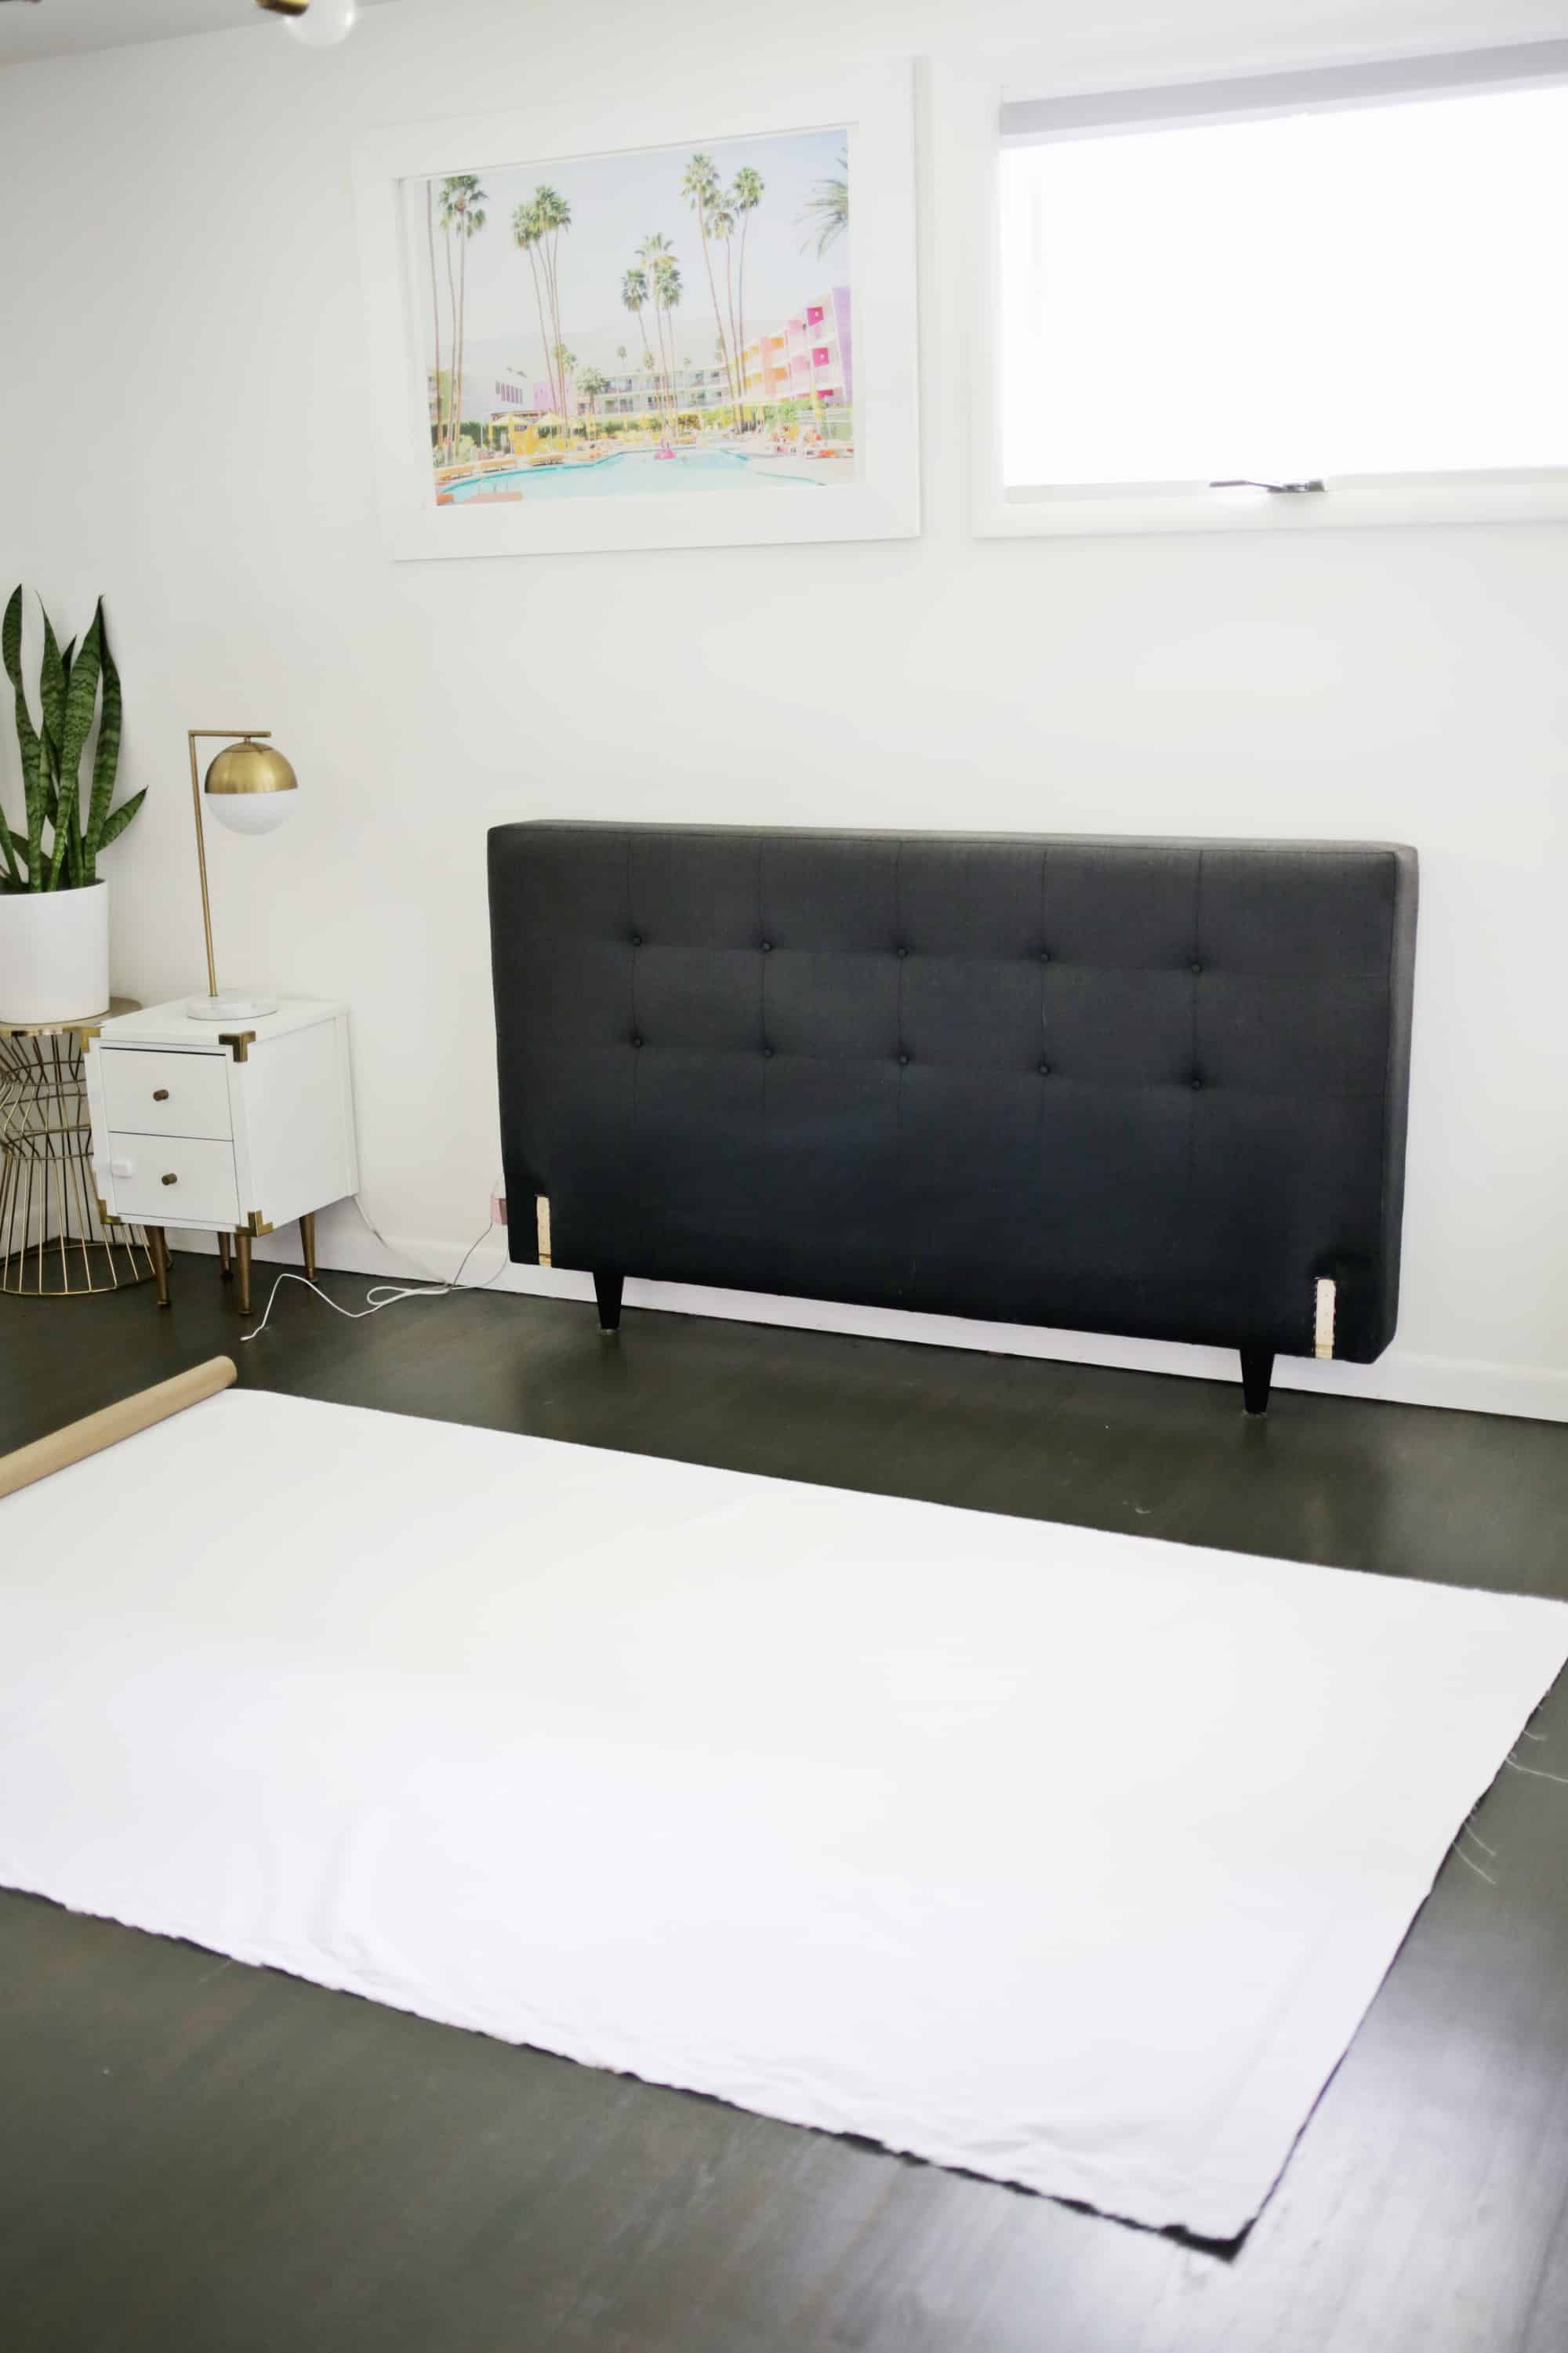 Cheap Wooden Bed Frames Reupholster Your Bed Frame In One Afternoon With A No Sew Option